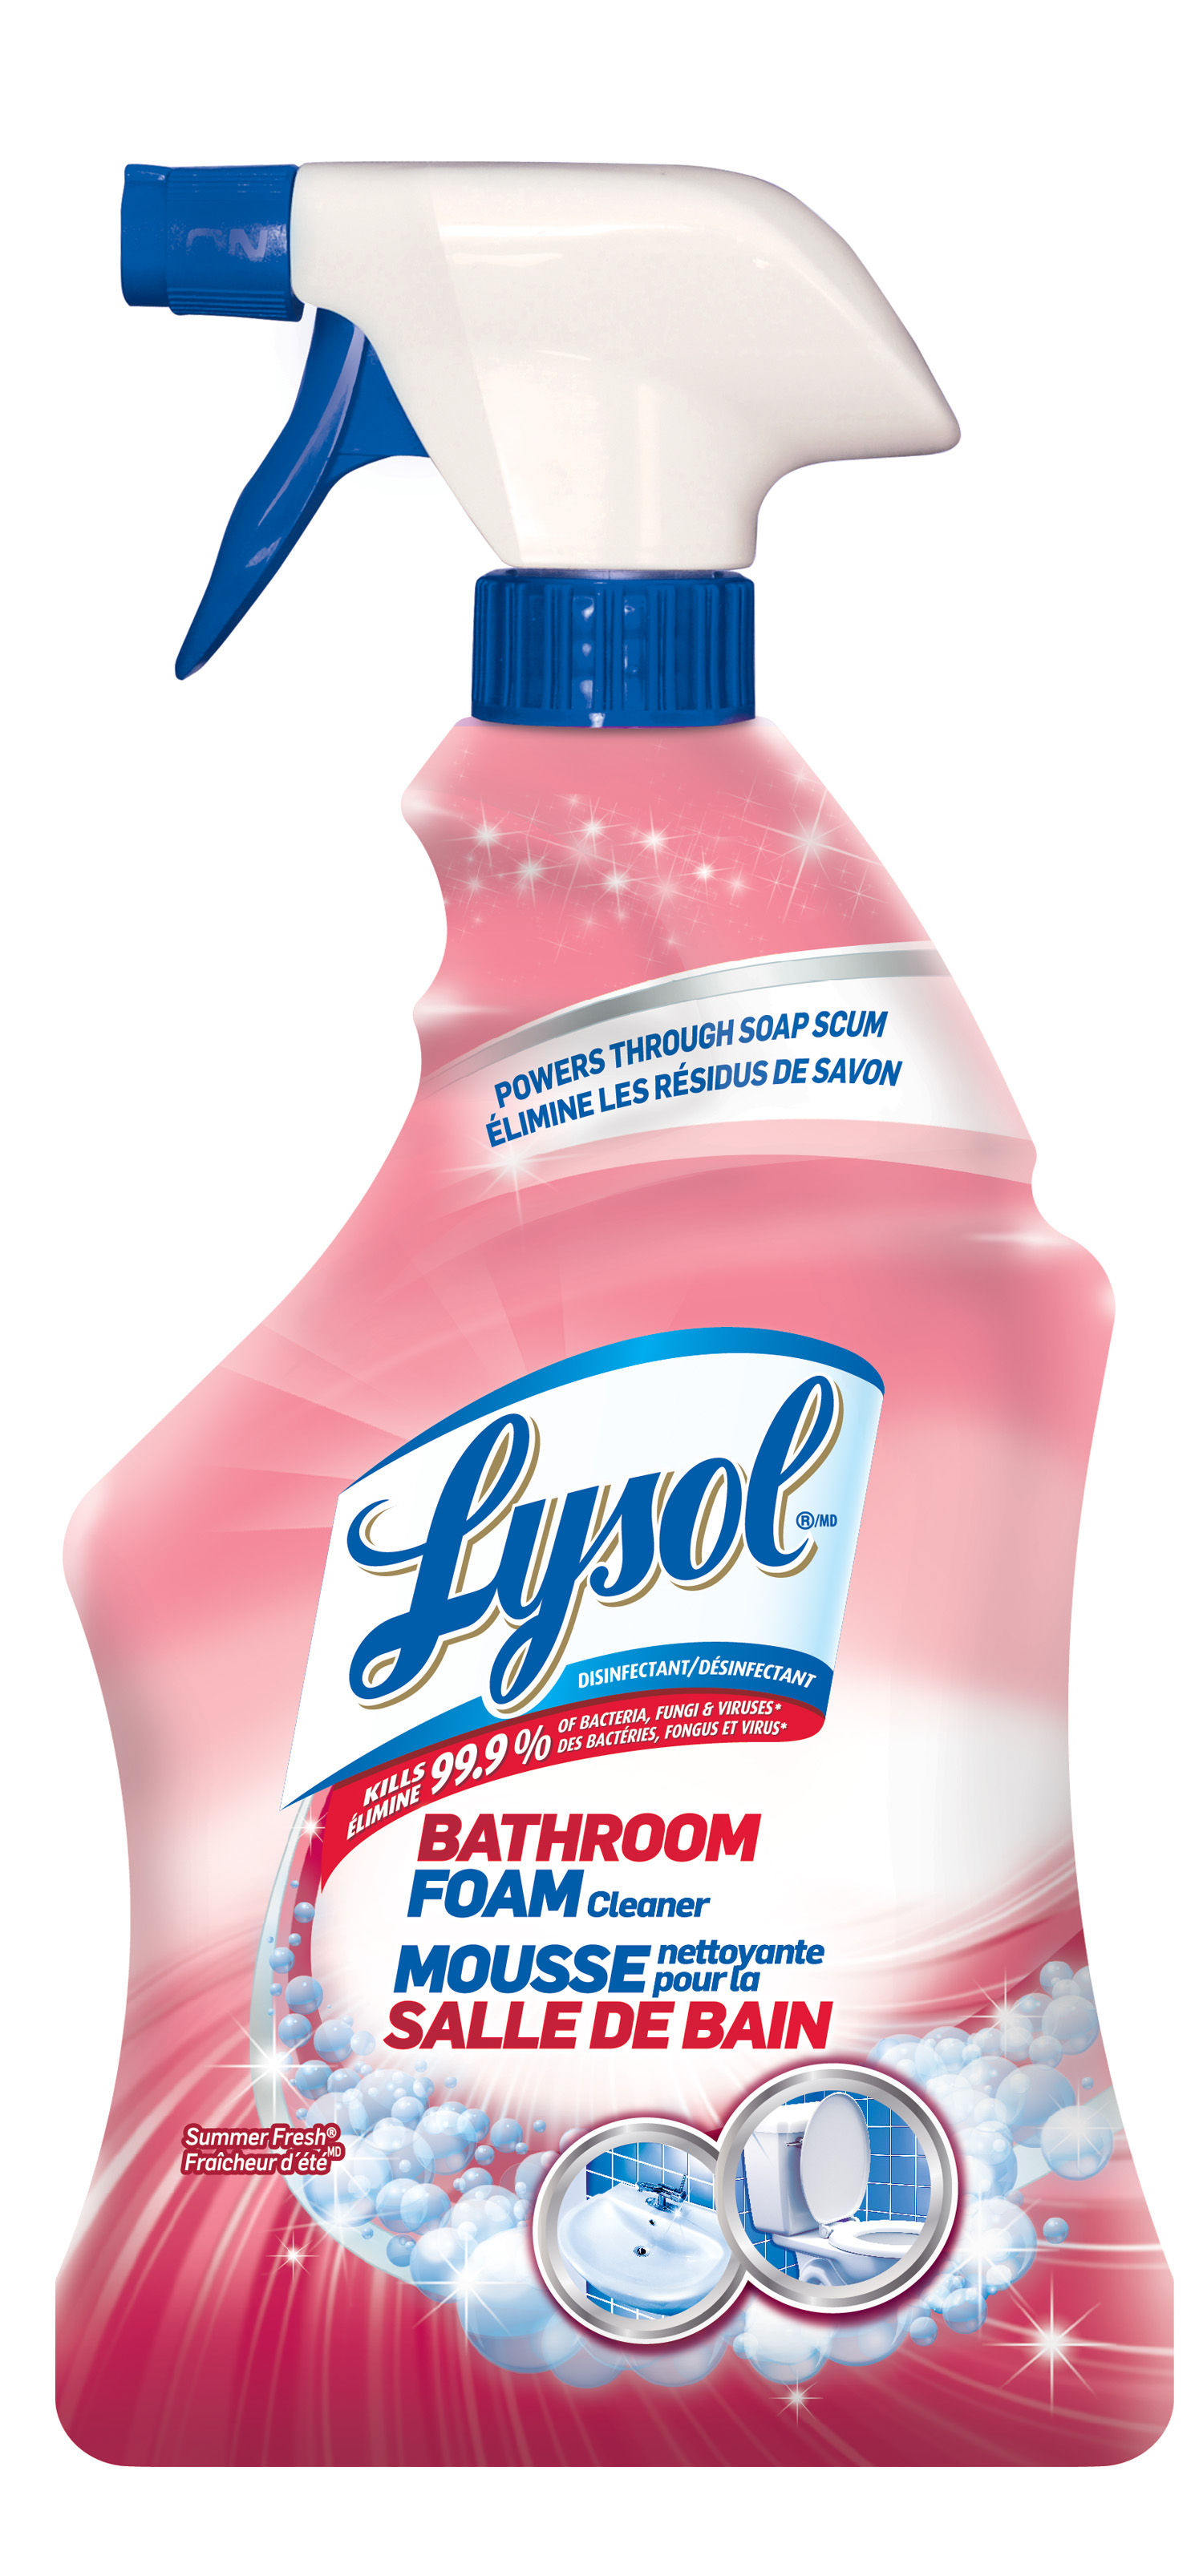 LYSOL® Disinfectant Bathroom Foam Cleaner - Trigger - Summer Fresh (Canada)